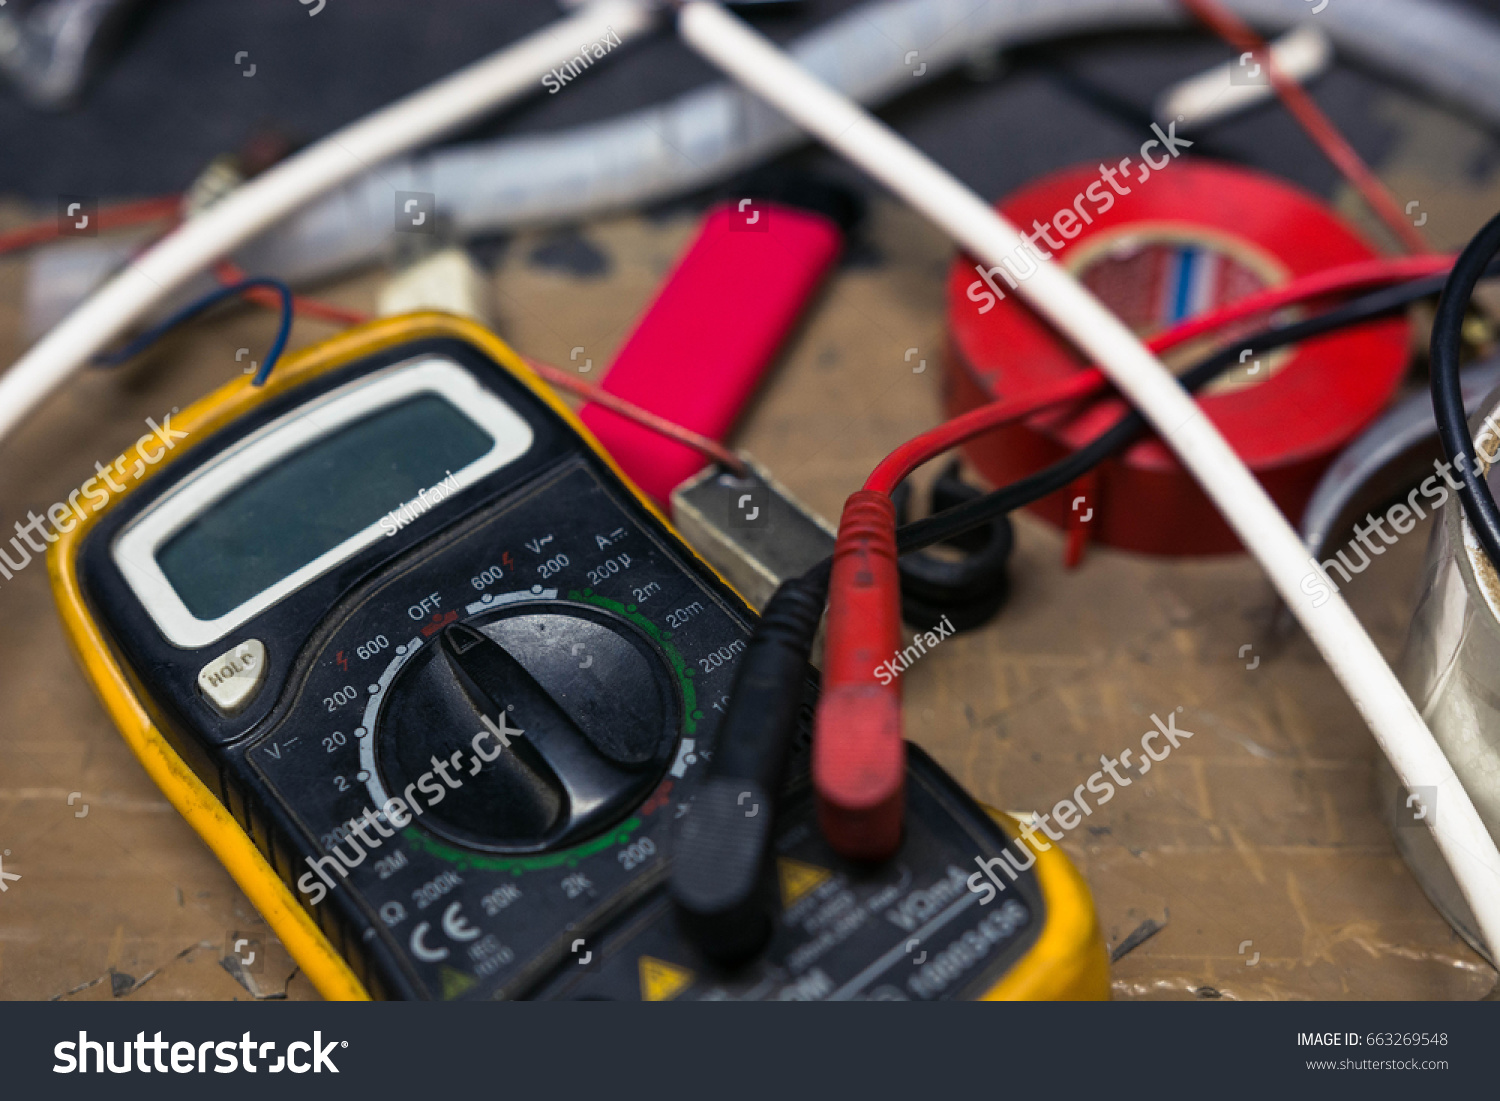 Digital multimeter on work table stock photo 663269548 shutterstock greentooth Image collections